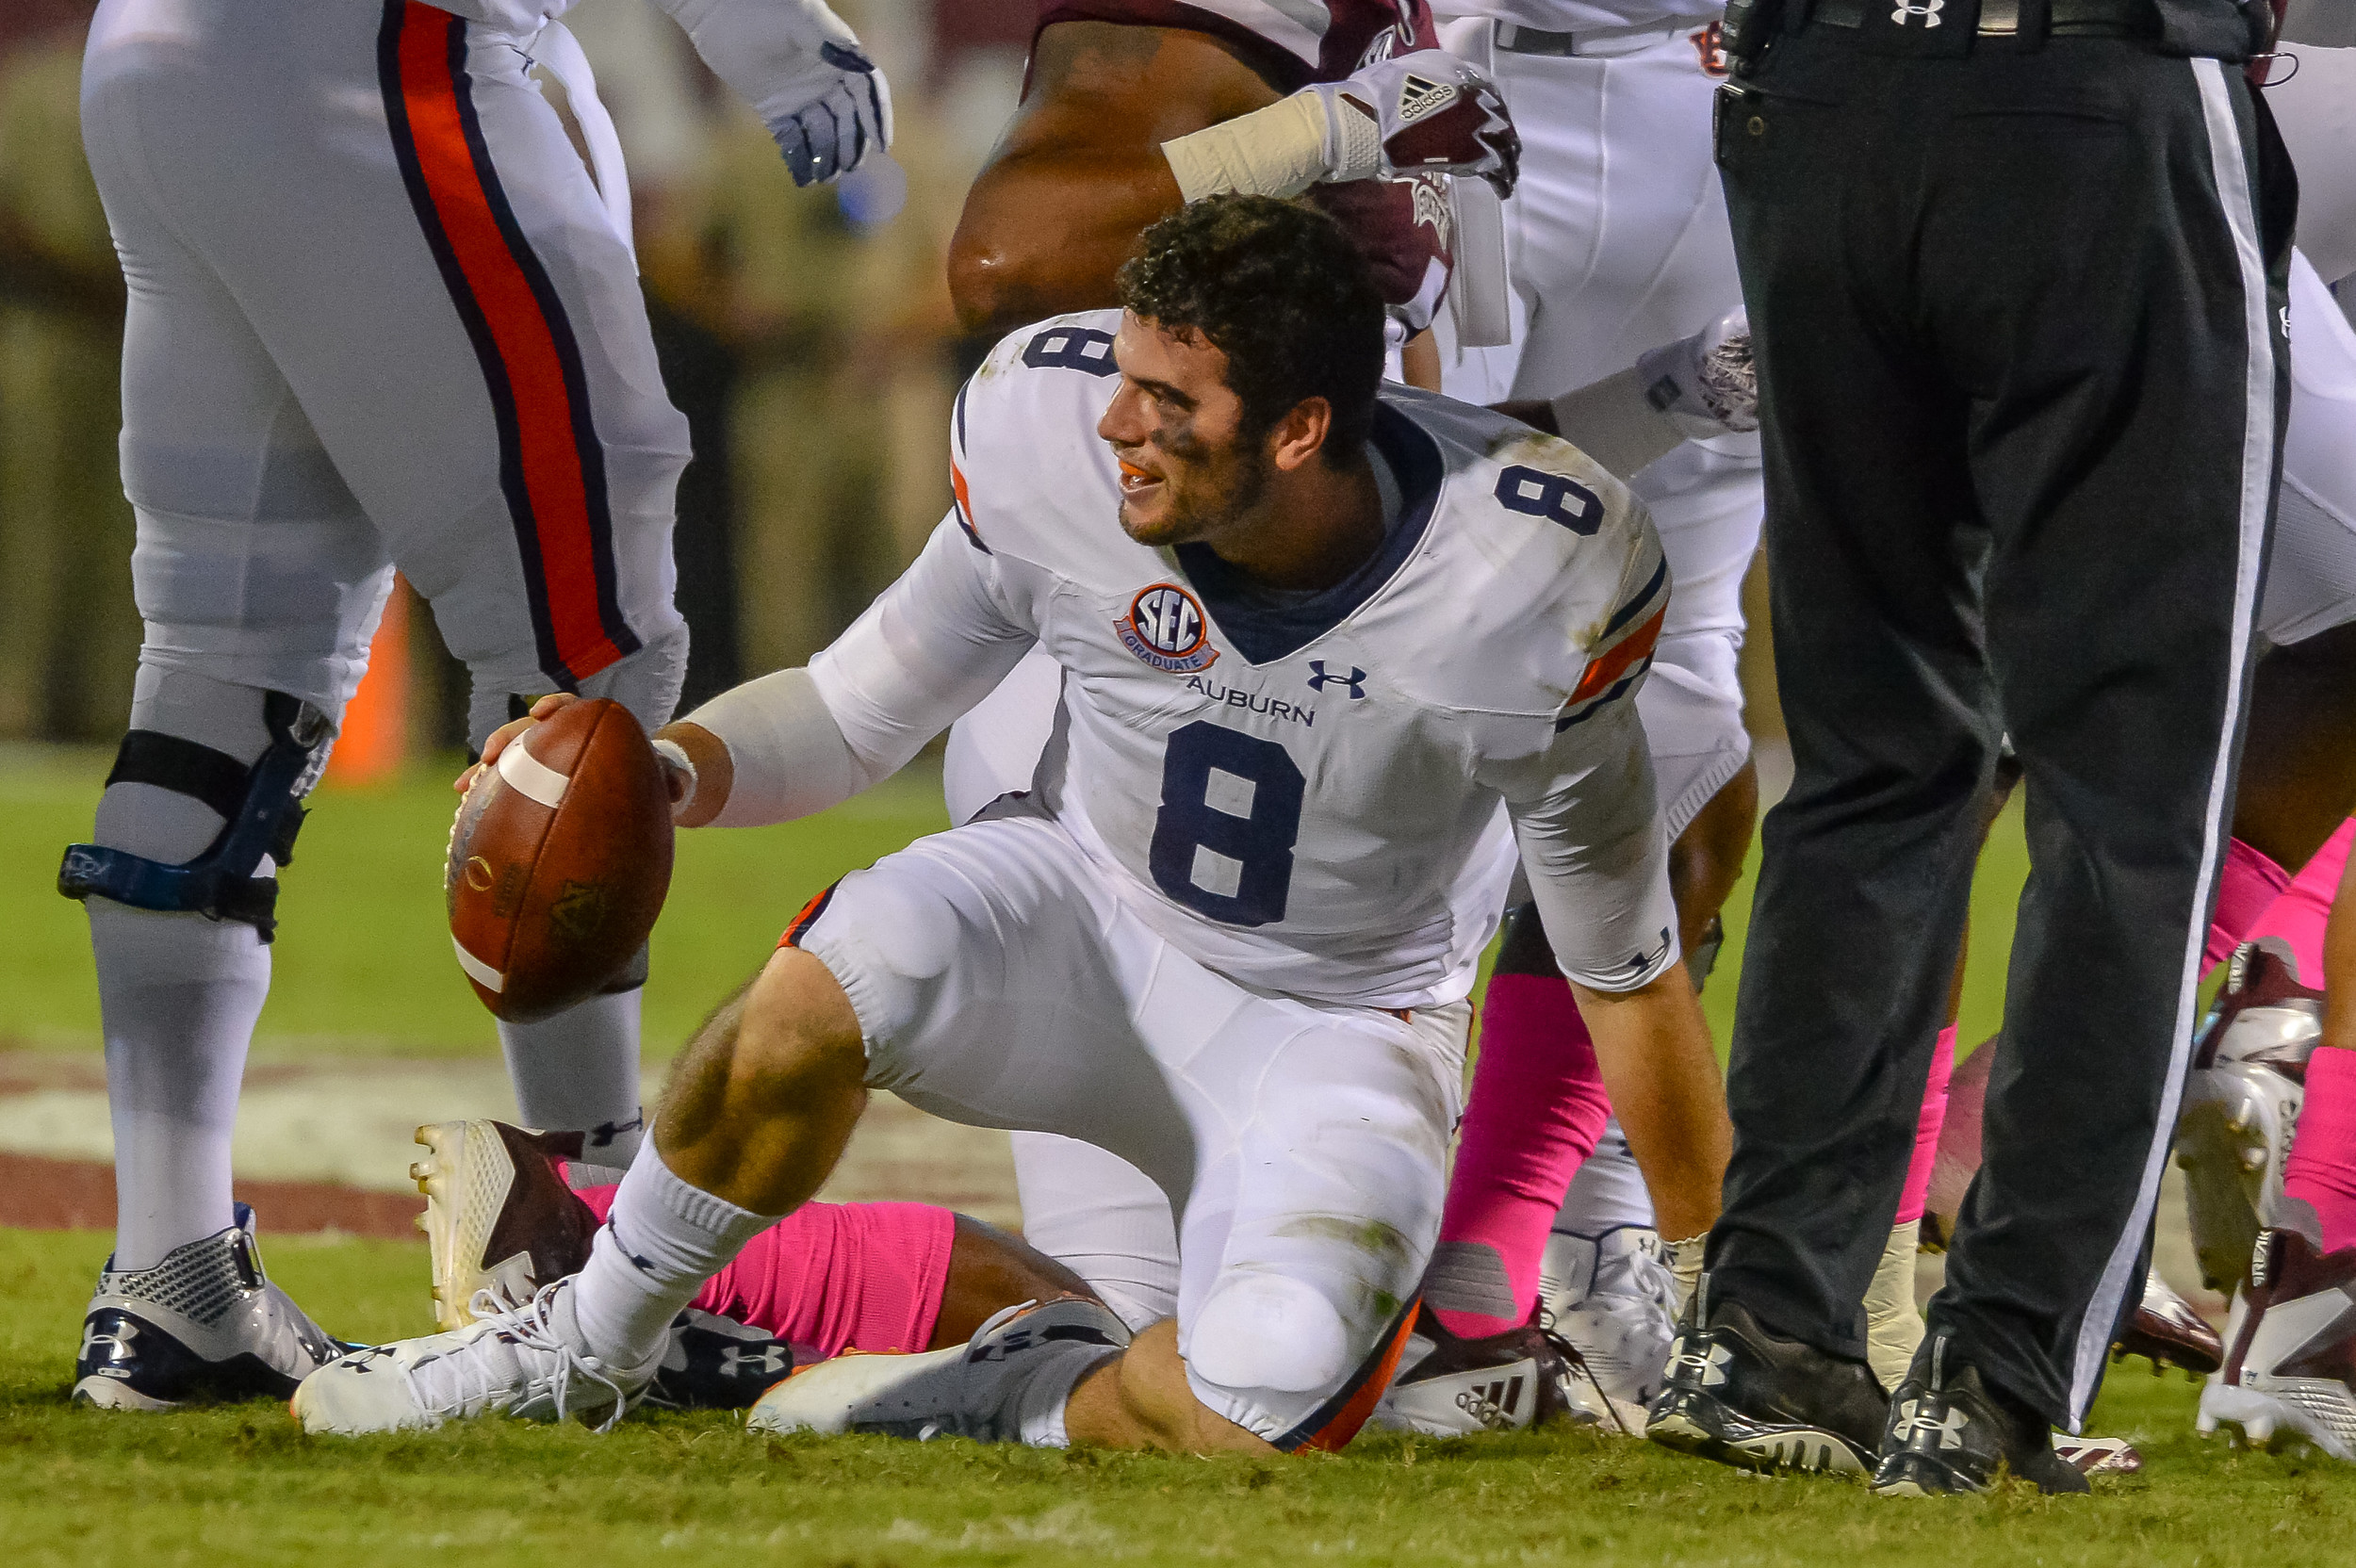 Auburn Tigers quarterback Jarrett Stidham (8) loses his helmet during the first half of Saturday's game, at Davis Wade Stadium in Starkville, MS. Daily Mountain Eagle -  Jeff Johnsey